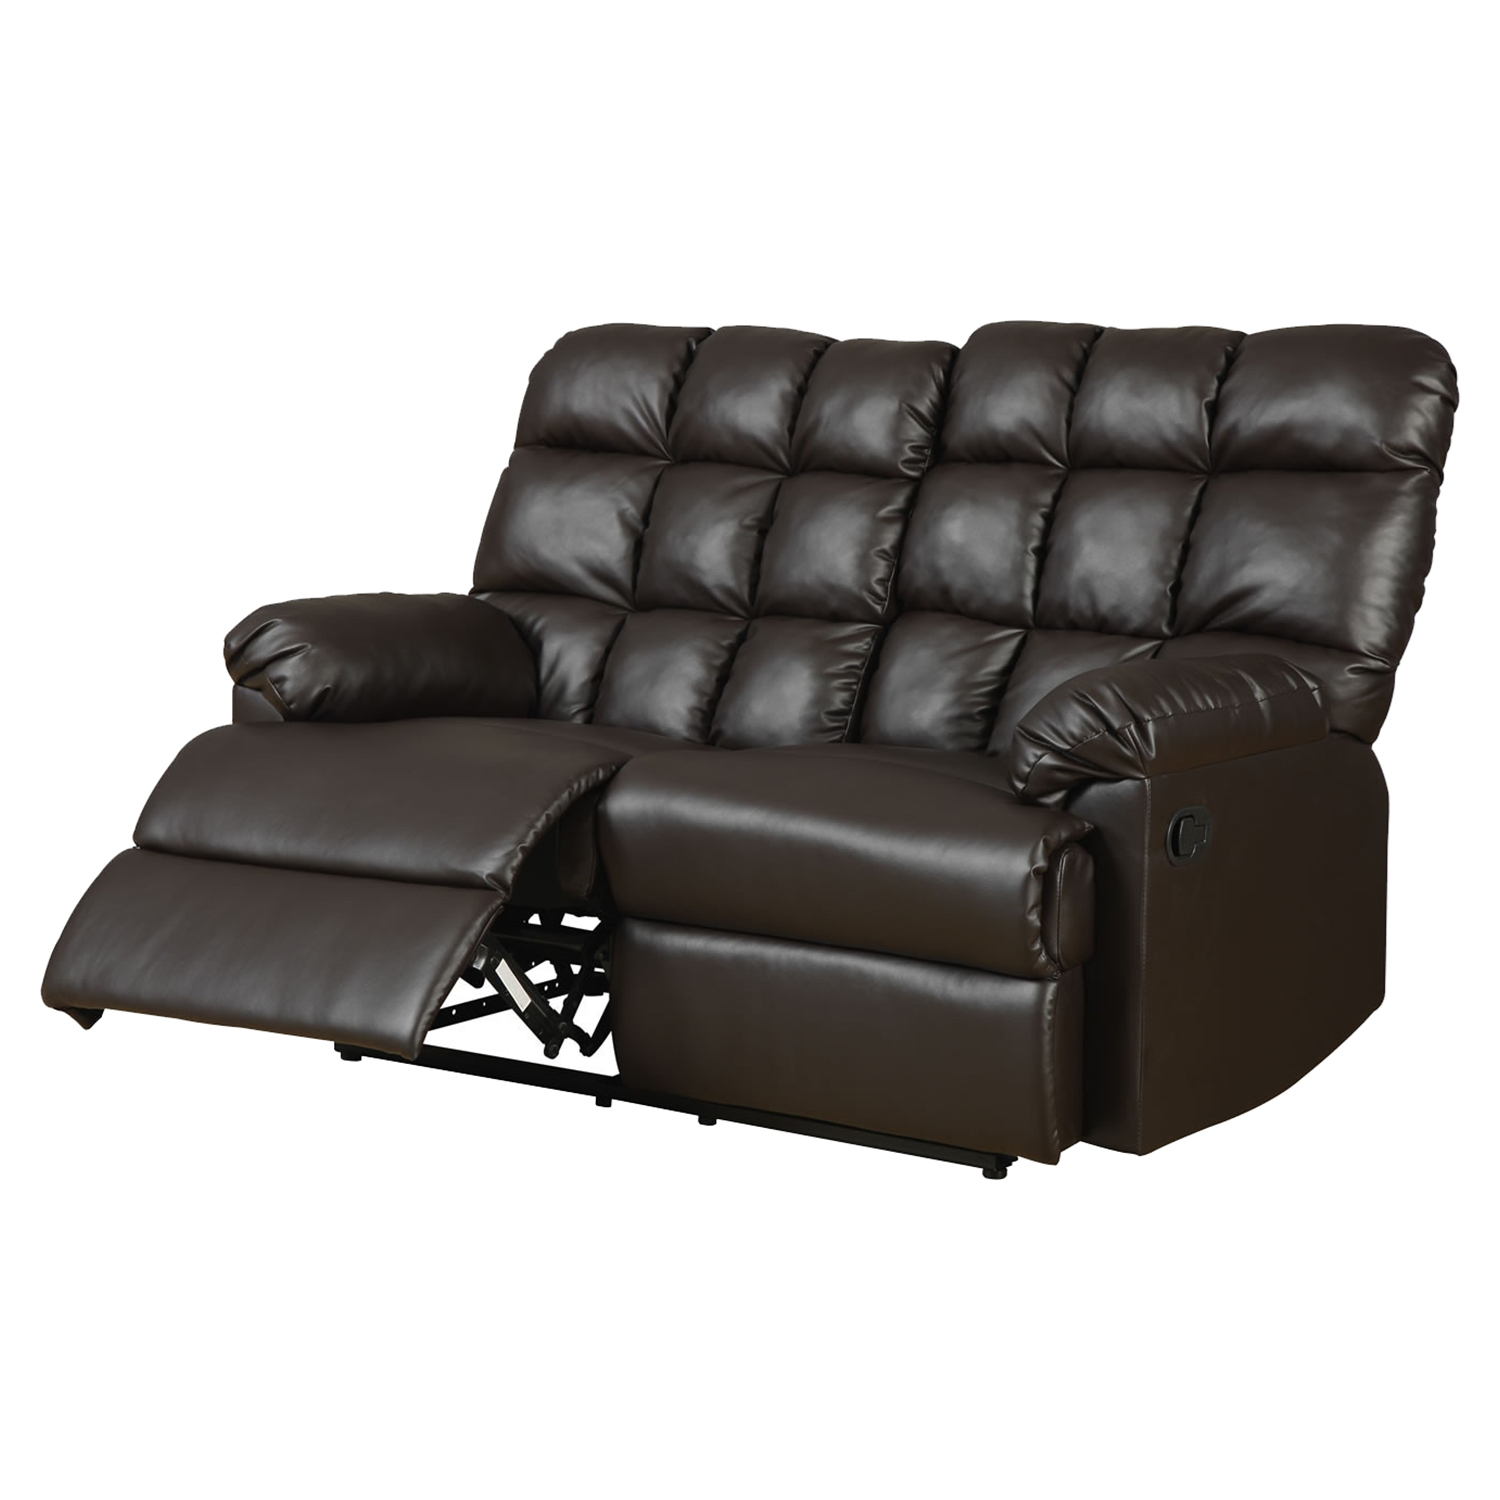 Jacqueline Bonded Leather Sofa Set in Dark Brown - GLO-U94710-SET